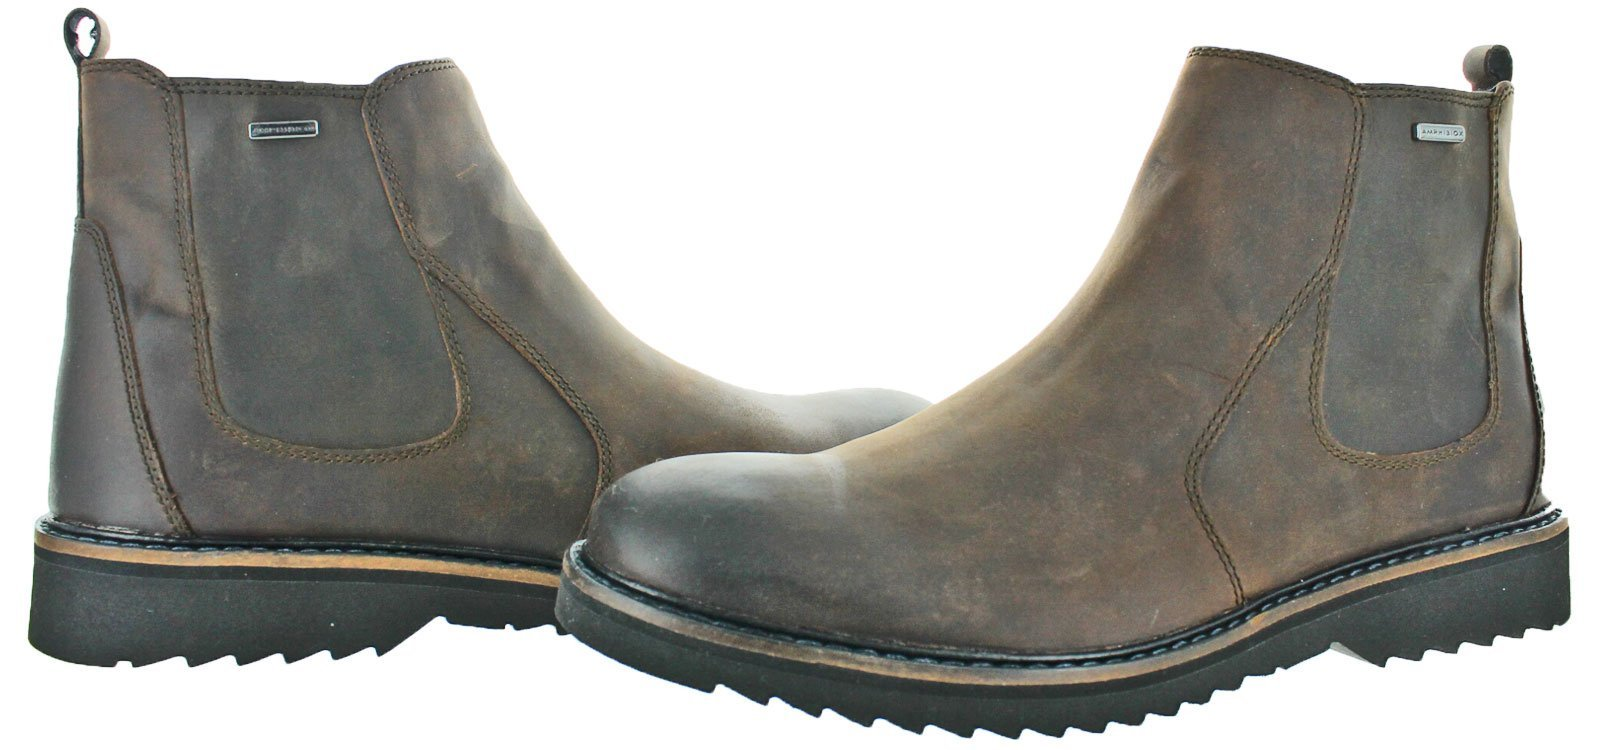 Geox Men's M Chester Abx 6 Chelsea Boot,Chestnut,46 EU/12.5 M US by Geox (Image #4)